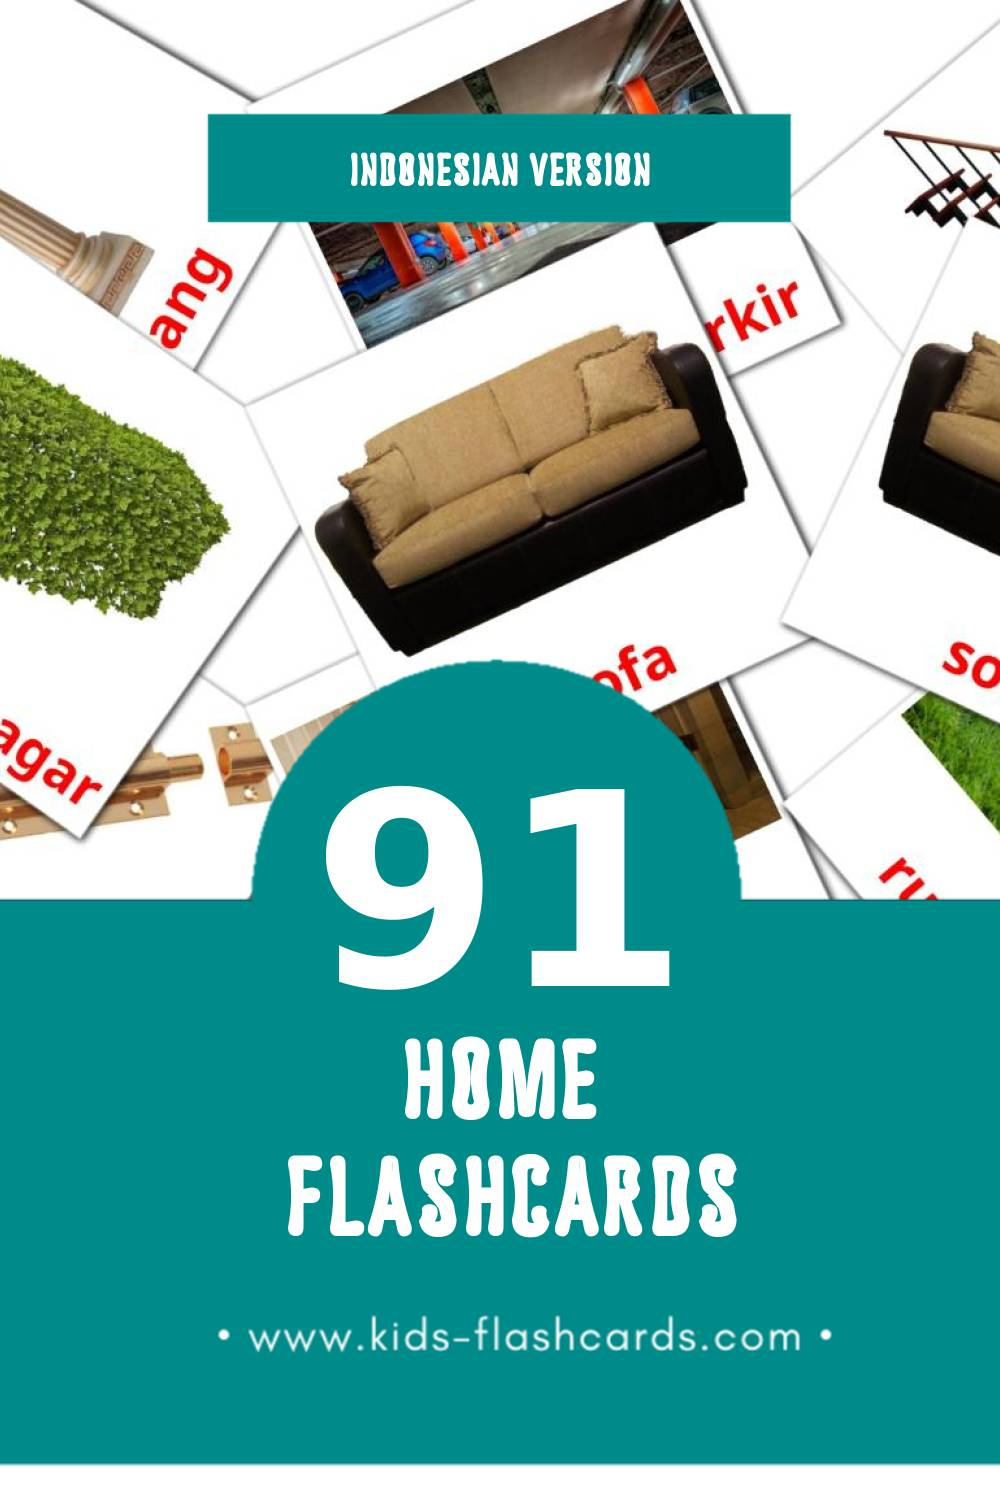 Visual Rumah Flashcards for Toddlers (74 cards in Indonesian)